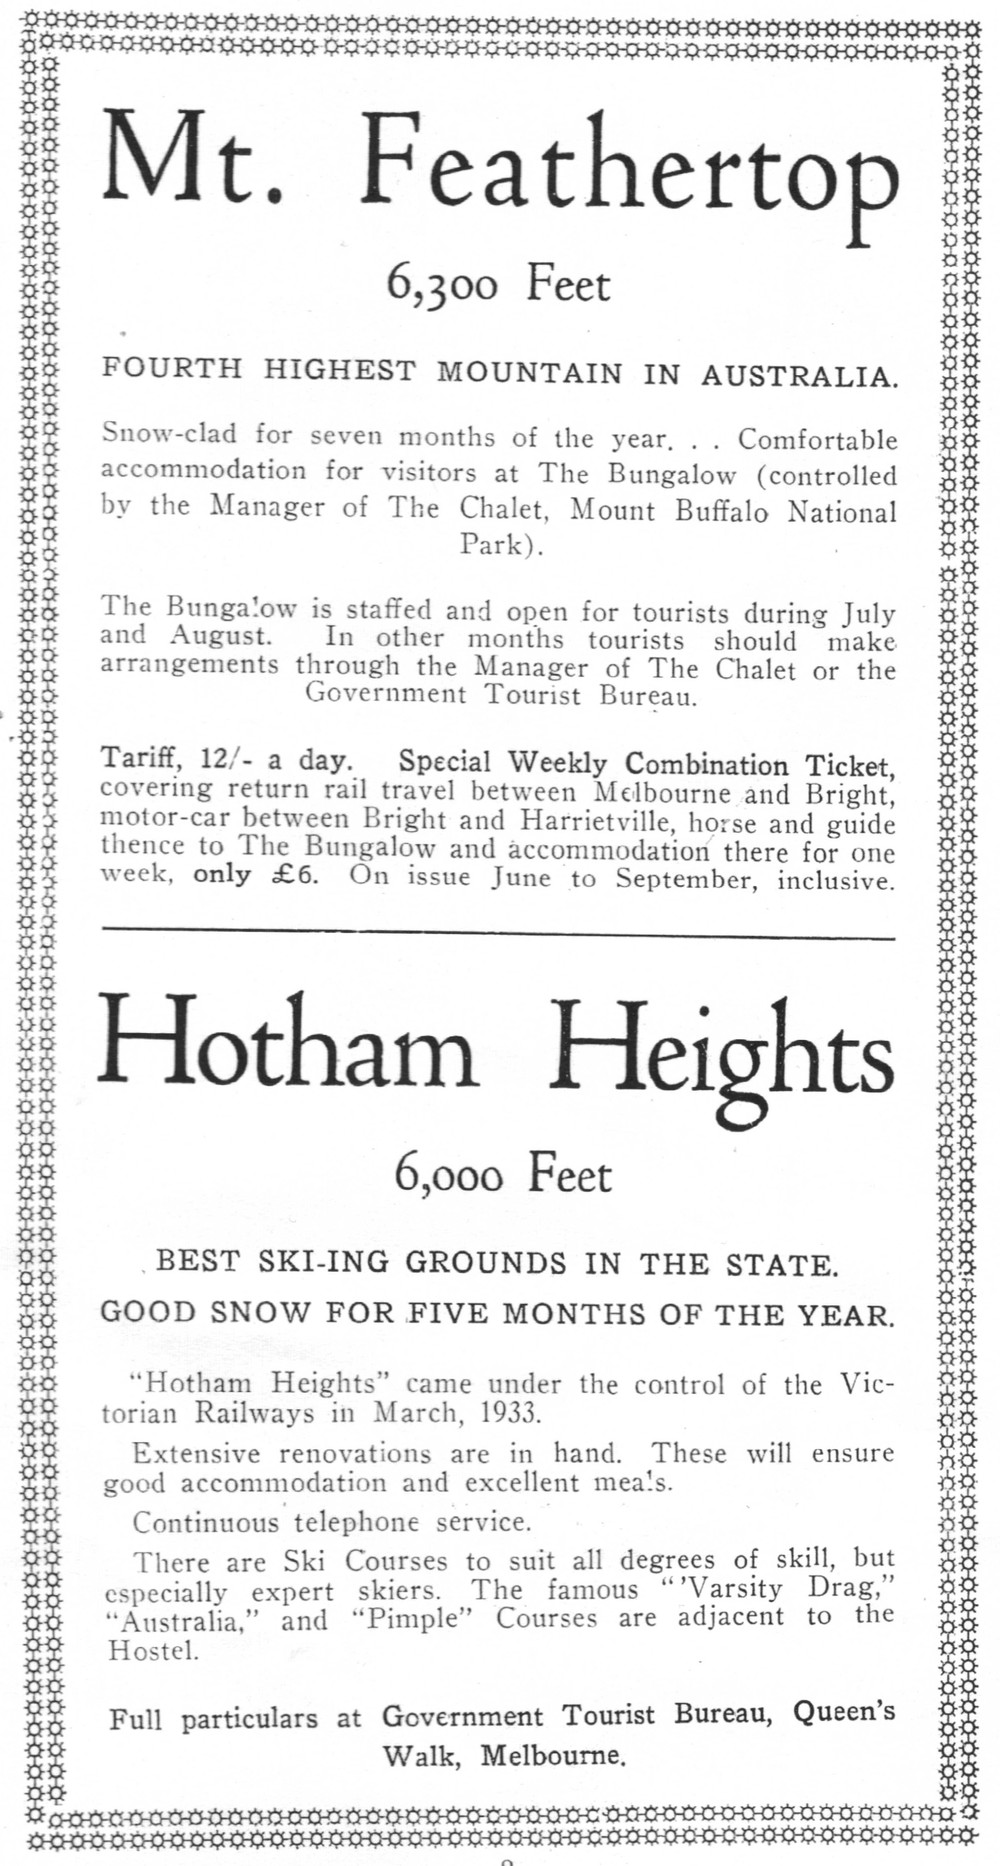 After taking over Hotham Heights in 1933 the railways began marketing it with the Feathertop Bungalow to more advanced skiers.  SCV Yearbook  1933, p. 8.